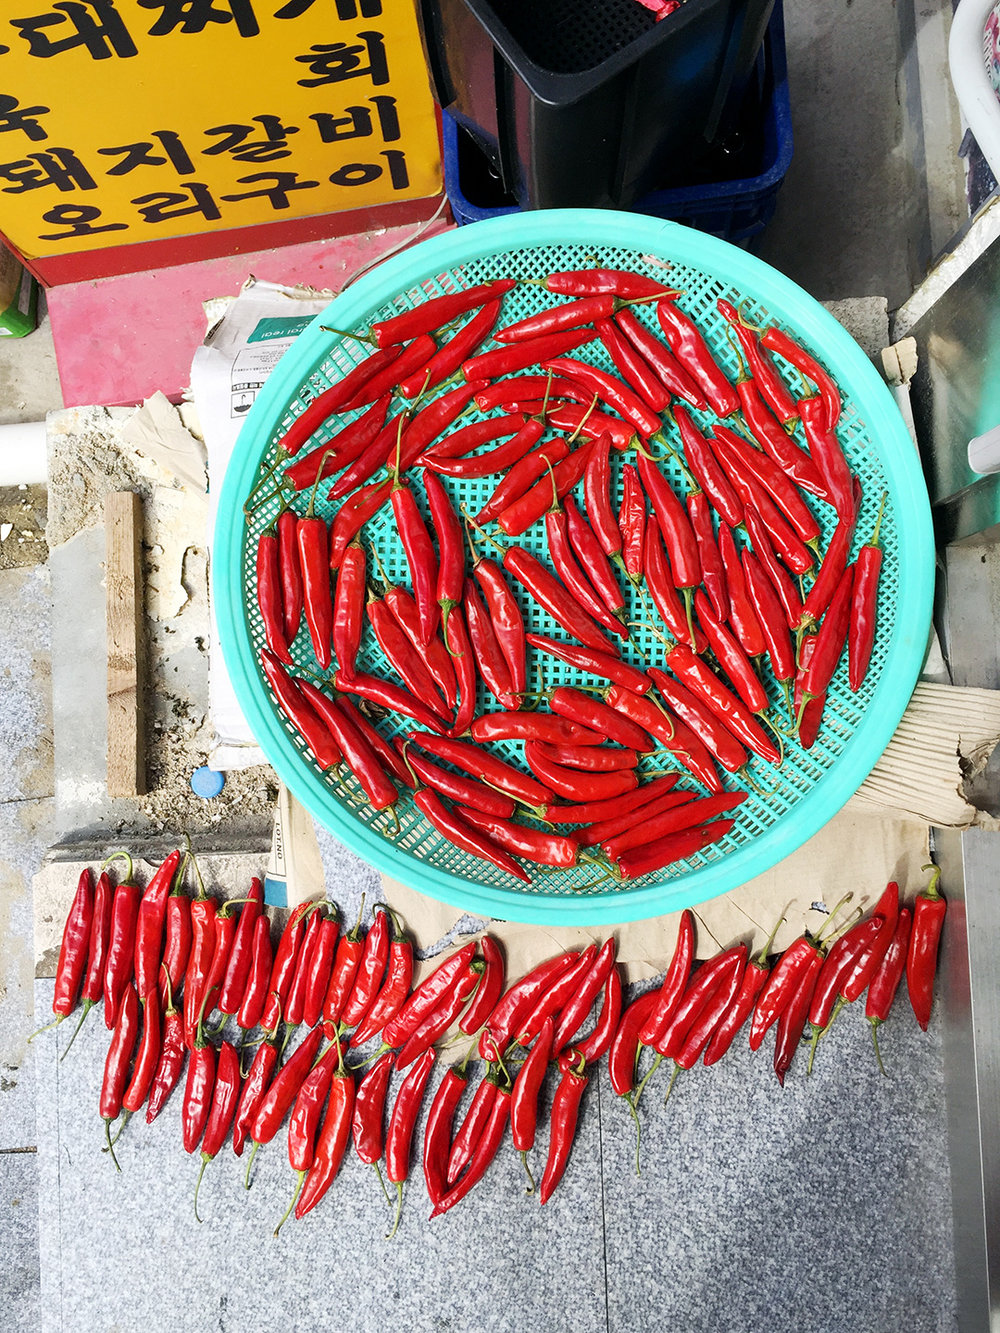 Red chili peppers laying out to dry in the sun. One of the most important ingredients in Korean cuisine, chili peppers are used in a wide variety of dishes, from kimchi, to soups, banchan, and much more! Koreans love spicy food!